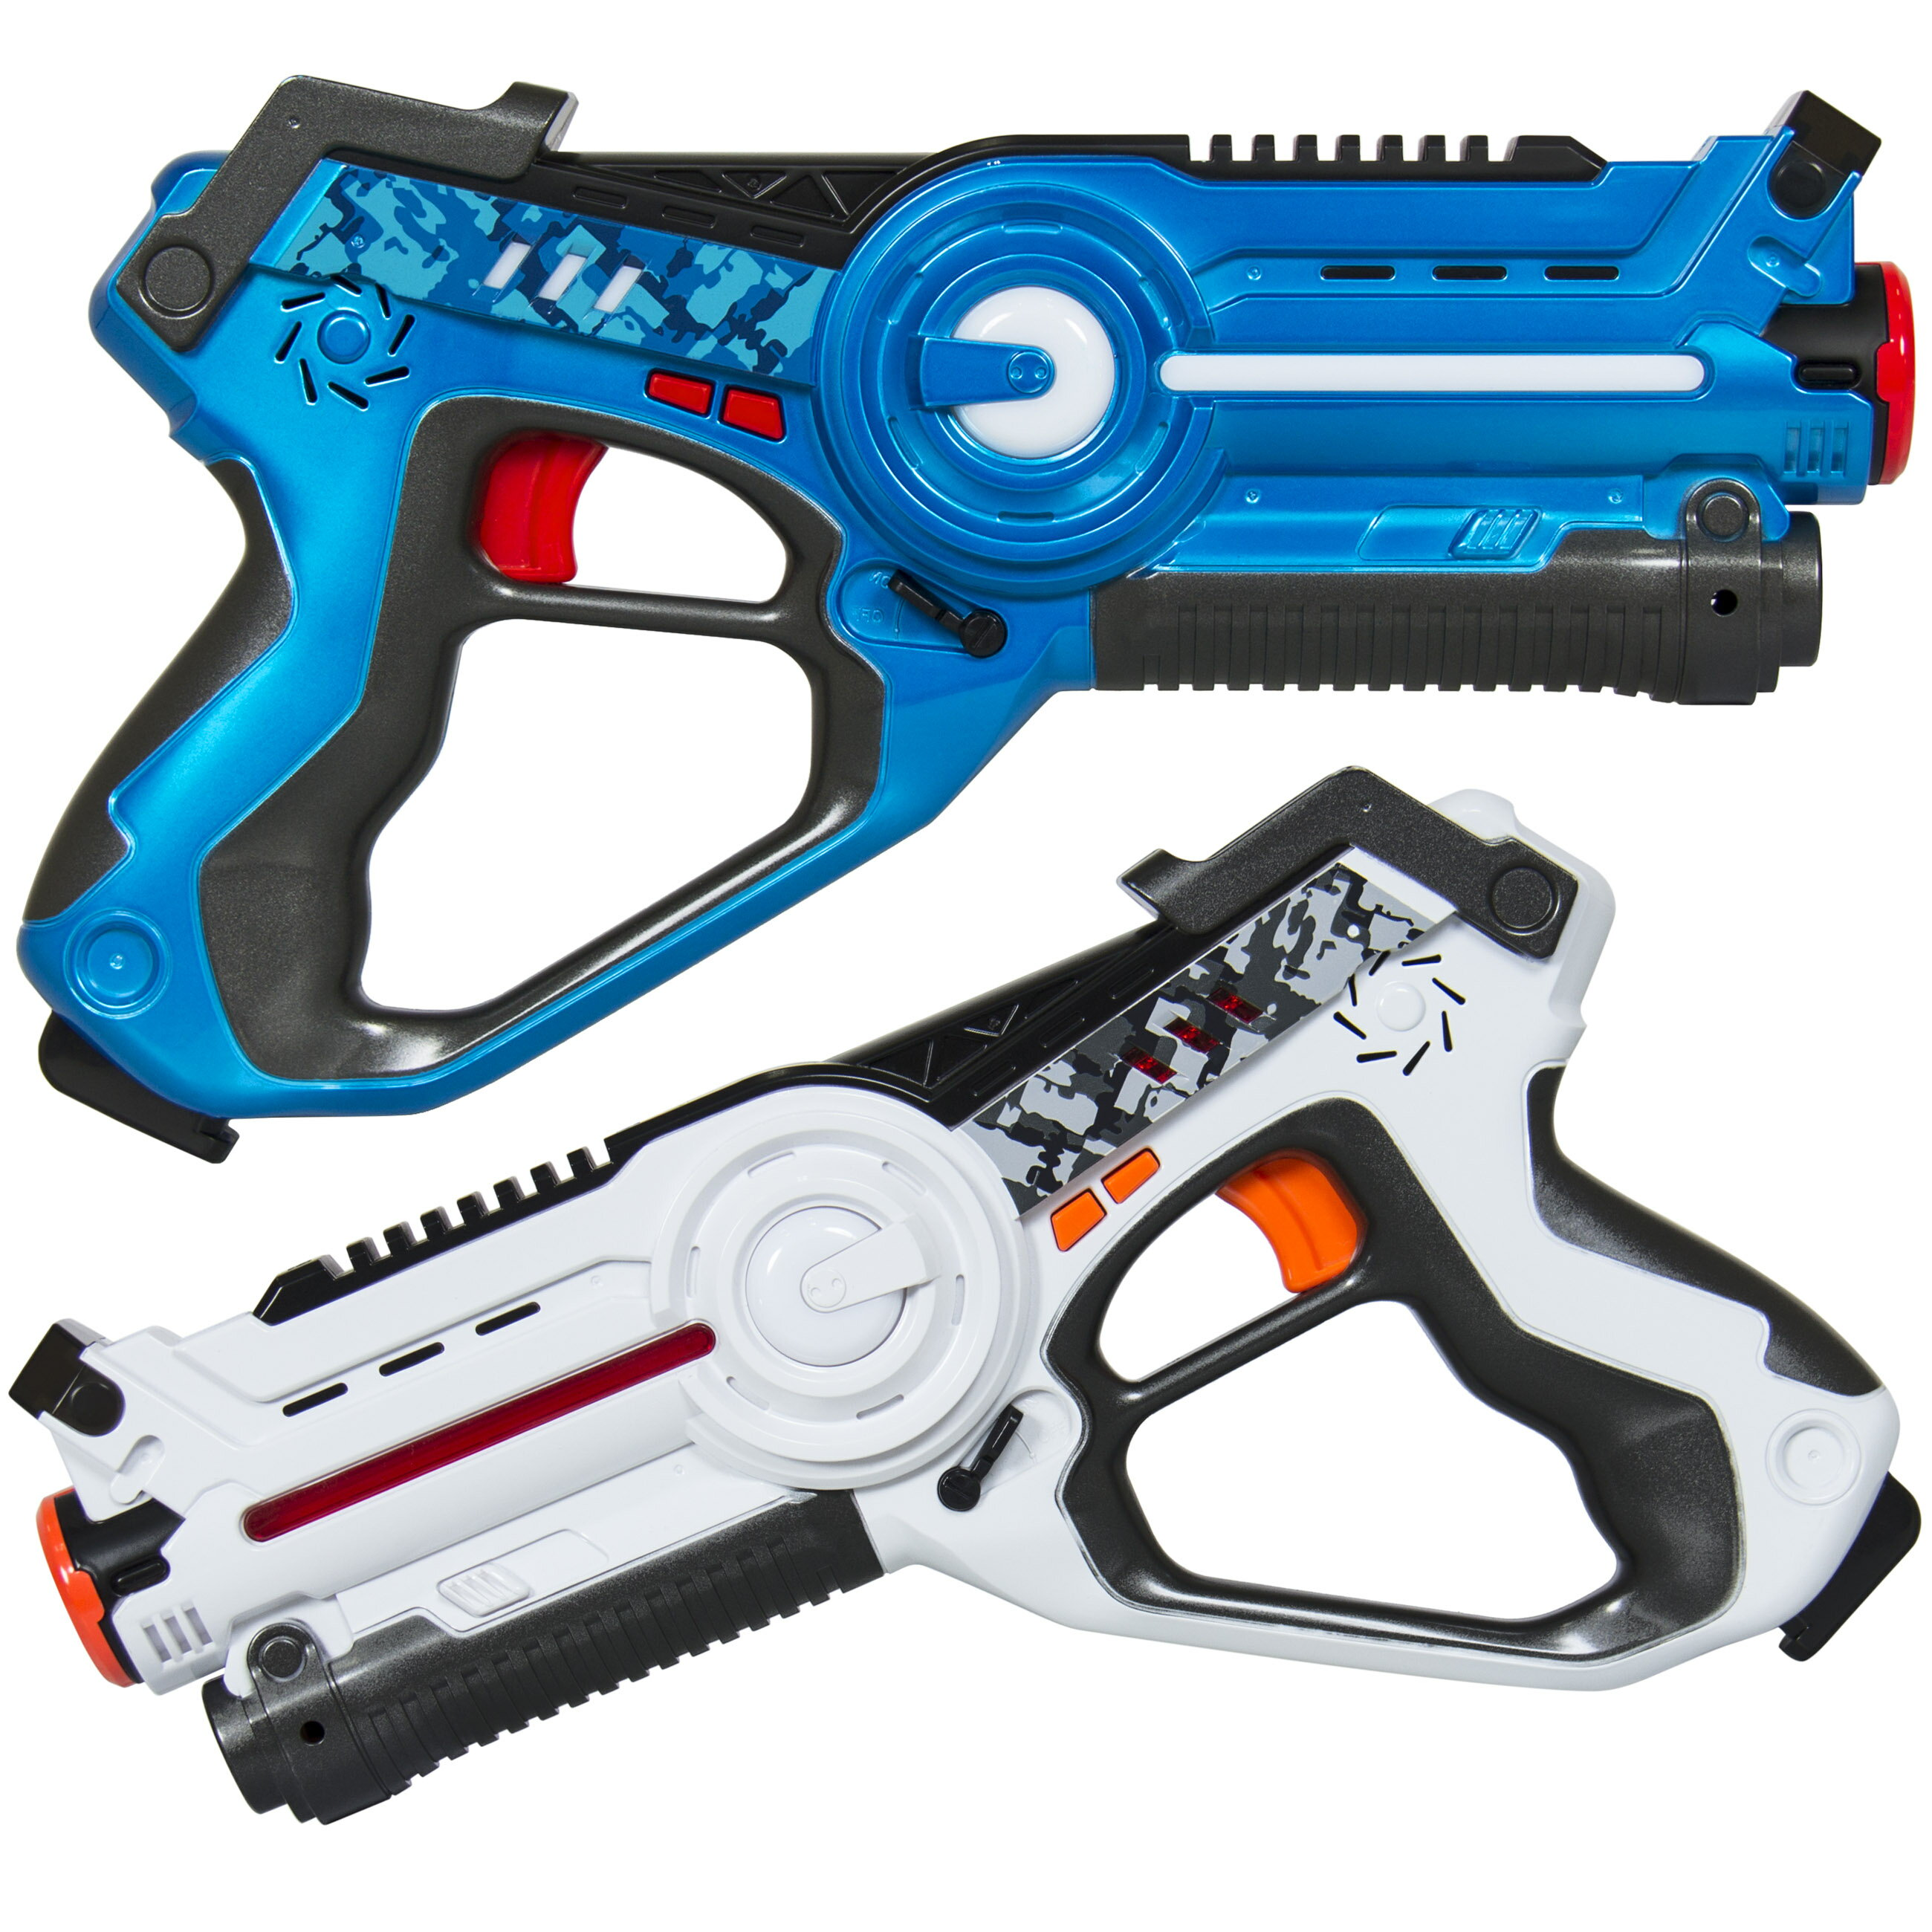 Best Laser Tag Toys : Bestchoiceproducts best choice products kids laser tag